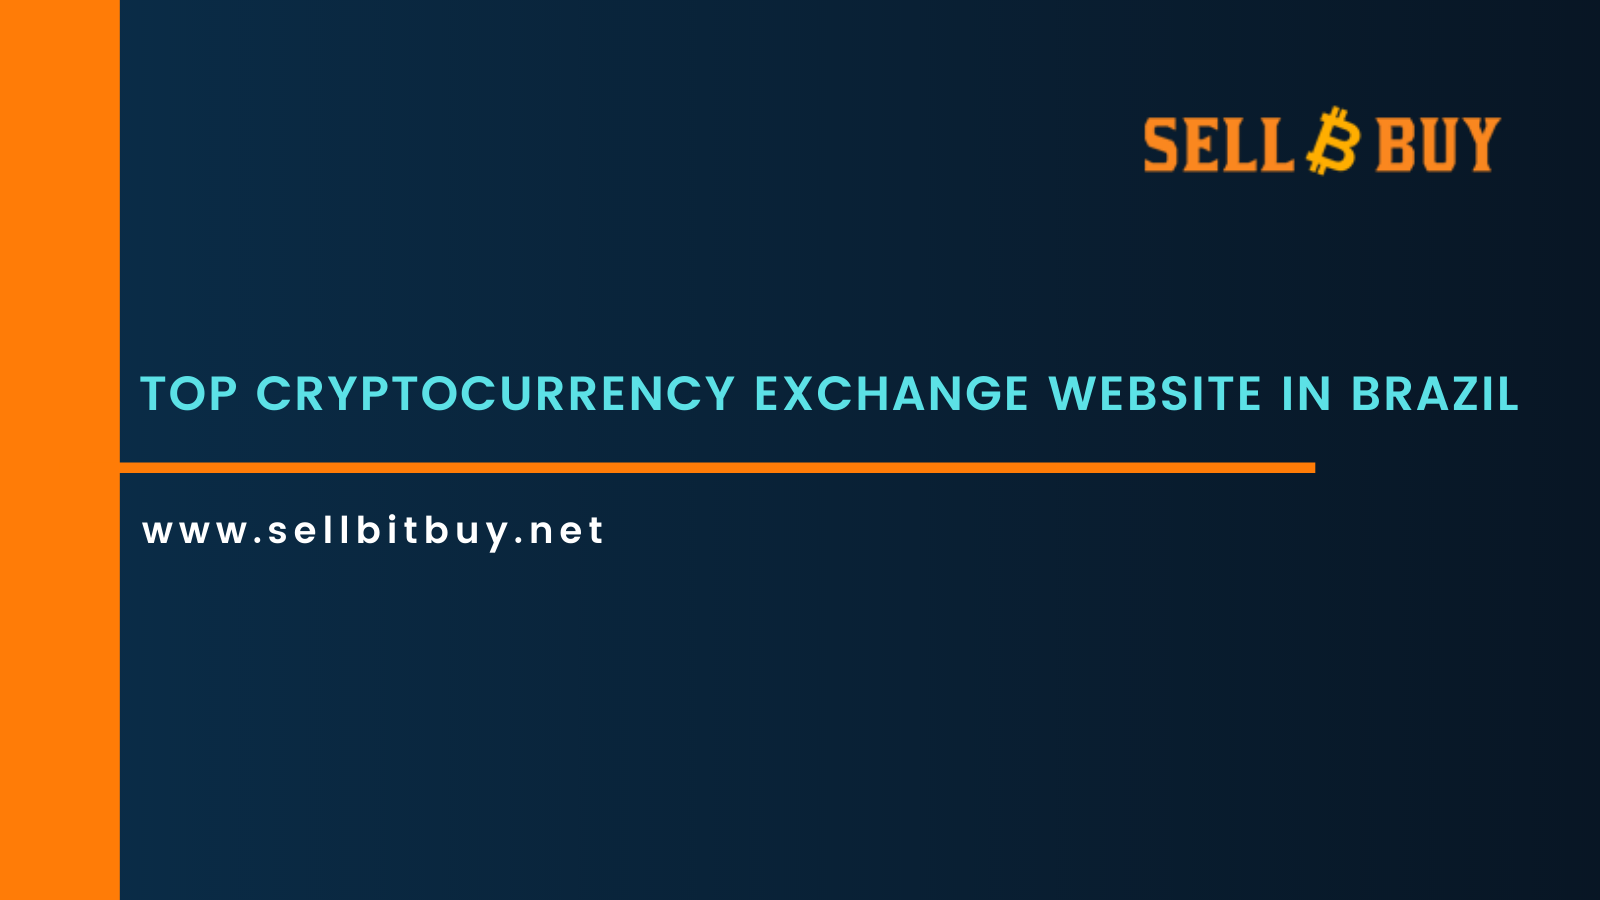 Top Cryptocurrency Exchange Website in Brazil